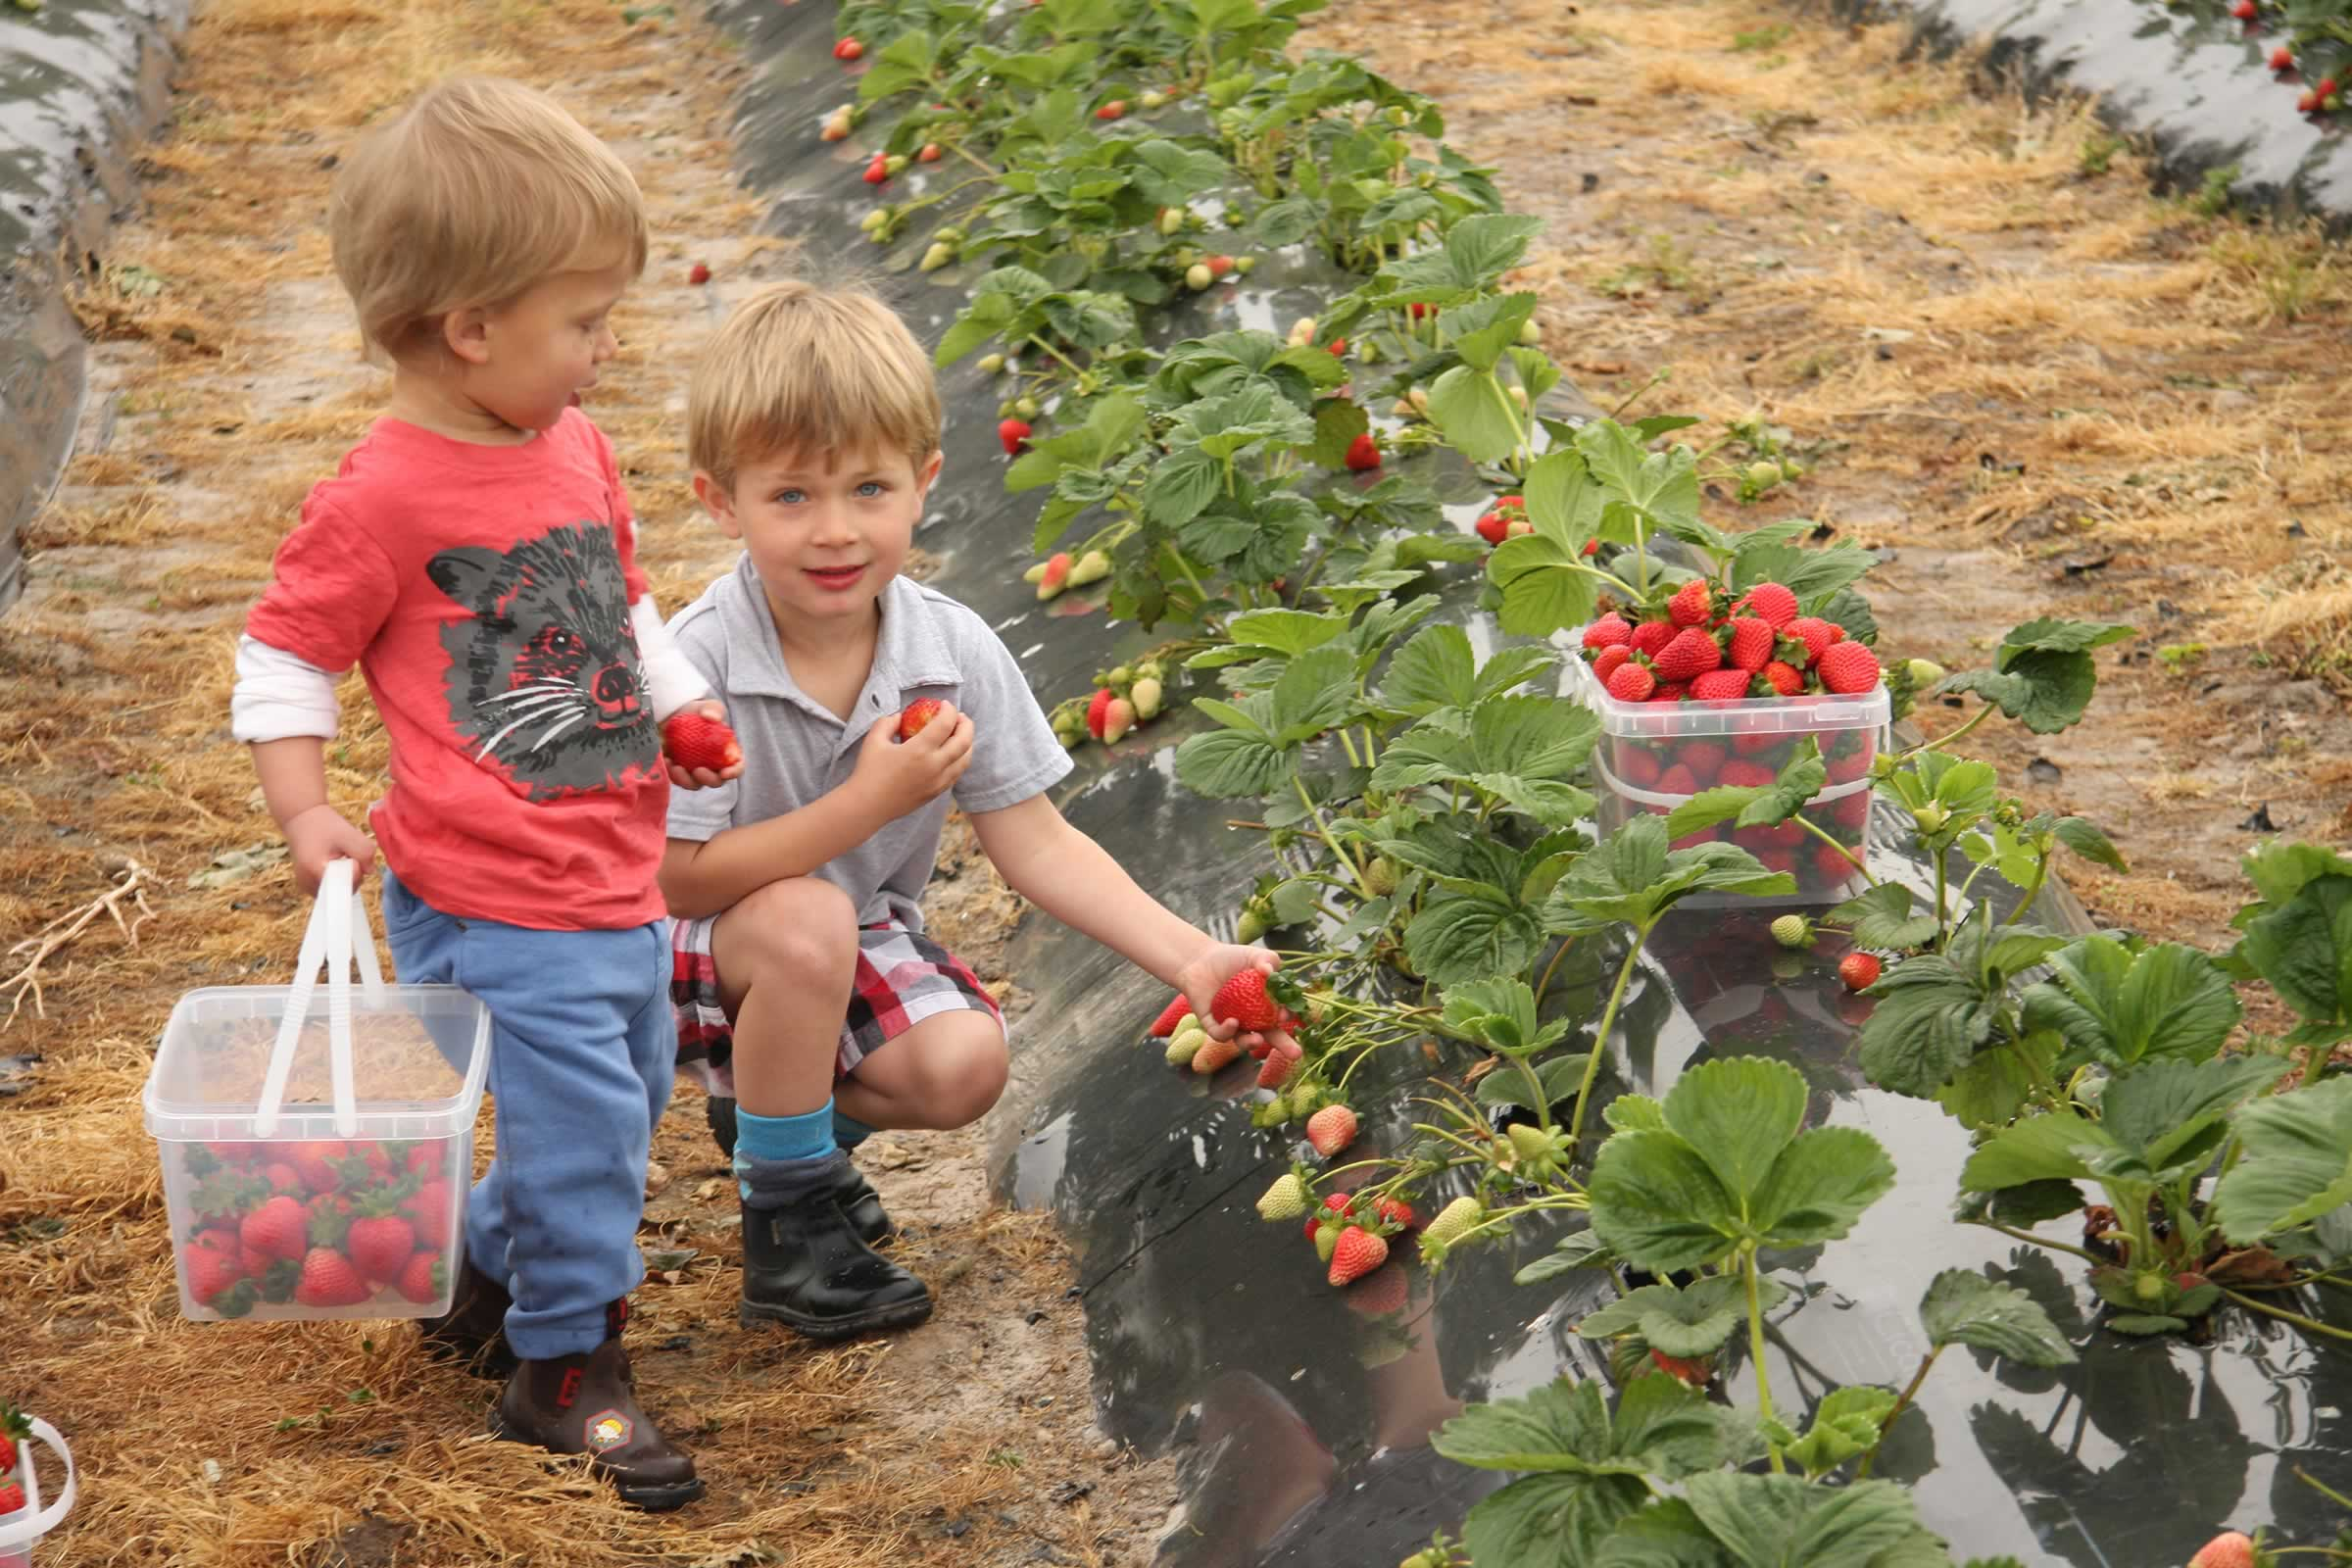 Picking strawberries, Hillwood Berry Farm